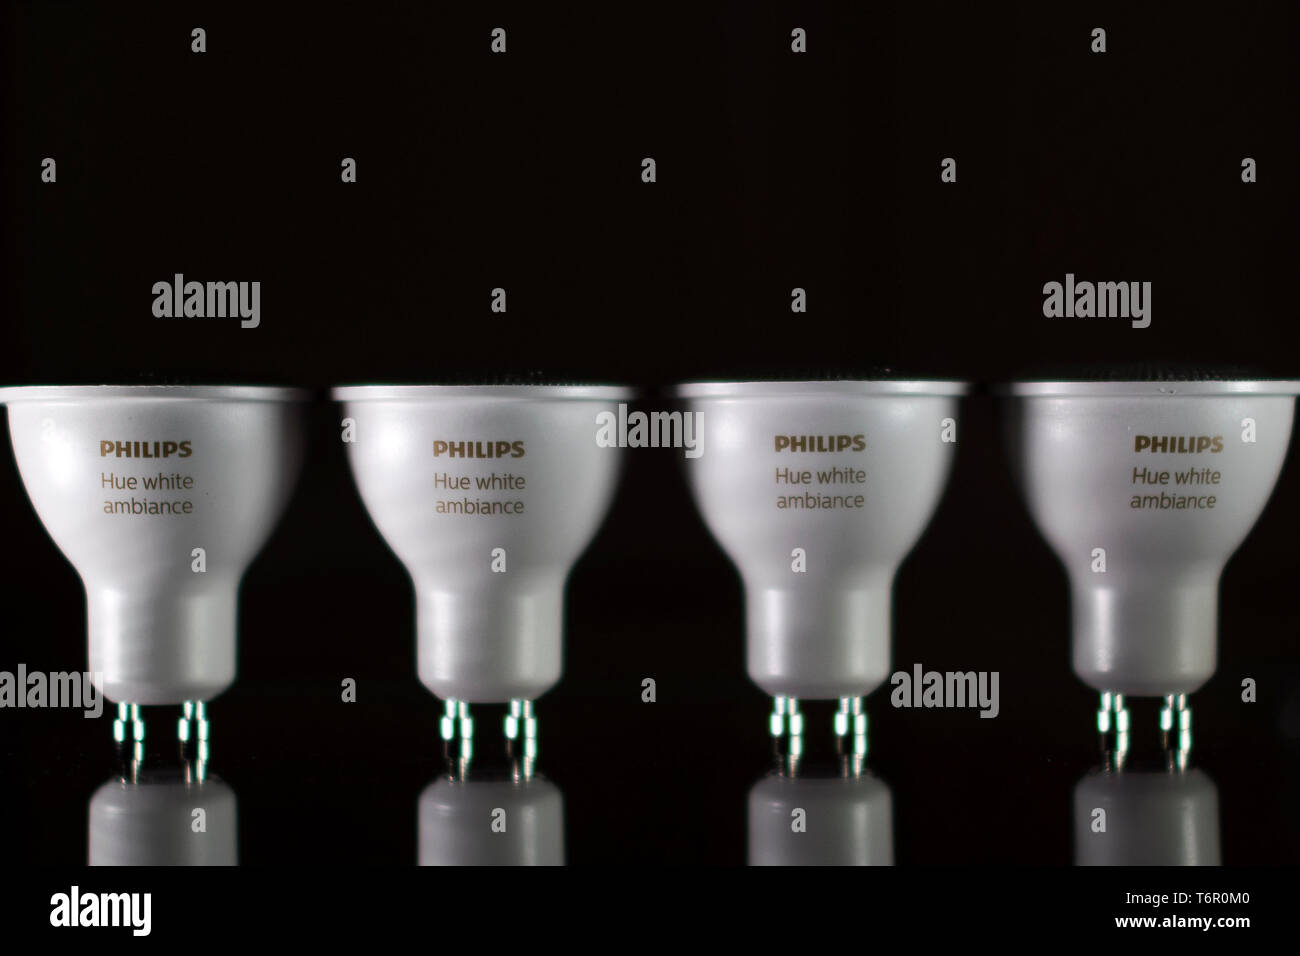 Philips Hue White Ambiance GU10 light bulbs pictured in